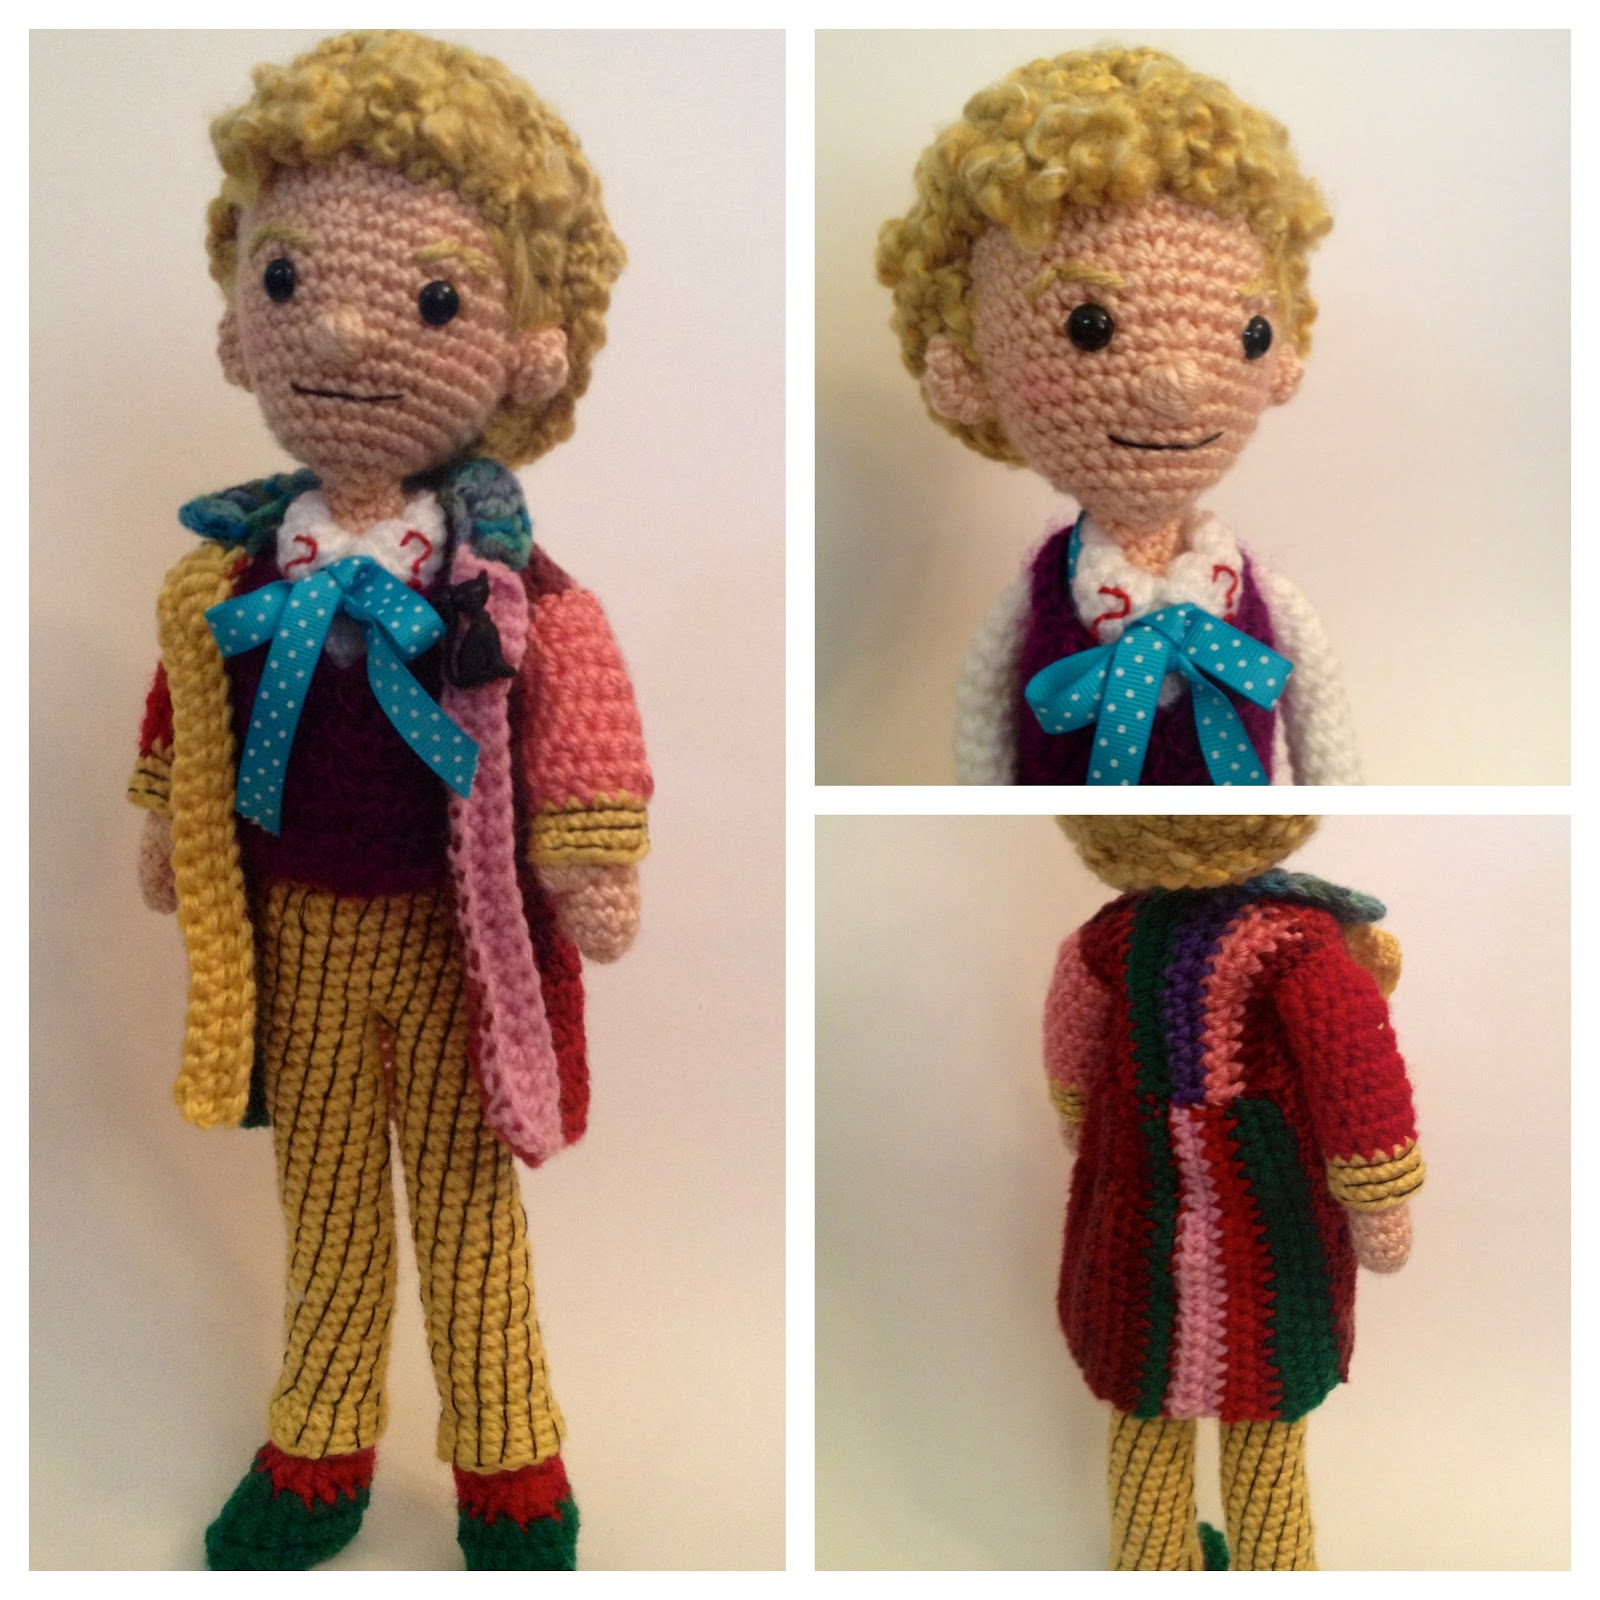 CRAFTYisCOOL: Doctor Who Collection Completion!